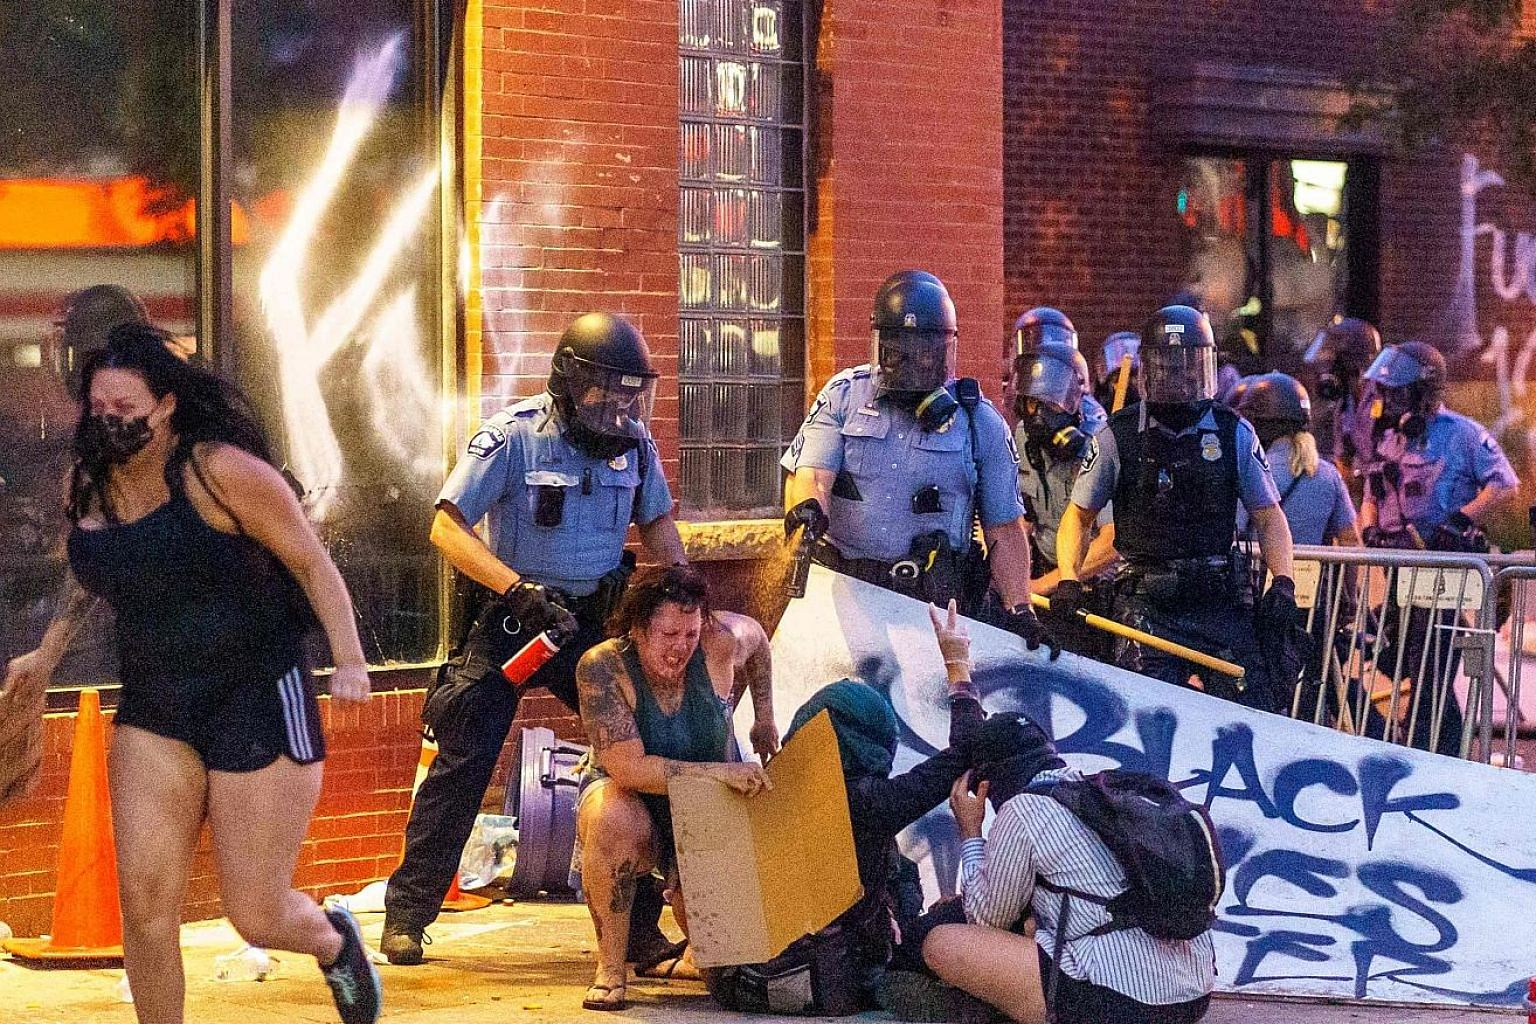 Police removing barricades set up by protesters outside the Third Police Precinct in Minneapolis on Wednesday. Left: Police in Minneapolis using pepper spray on protesters during a demonstration outside the Third Police Precinct on Wednesday over the